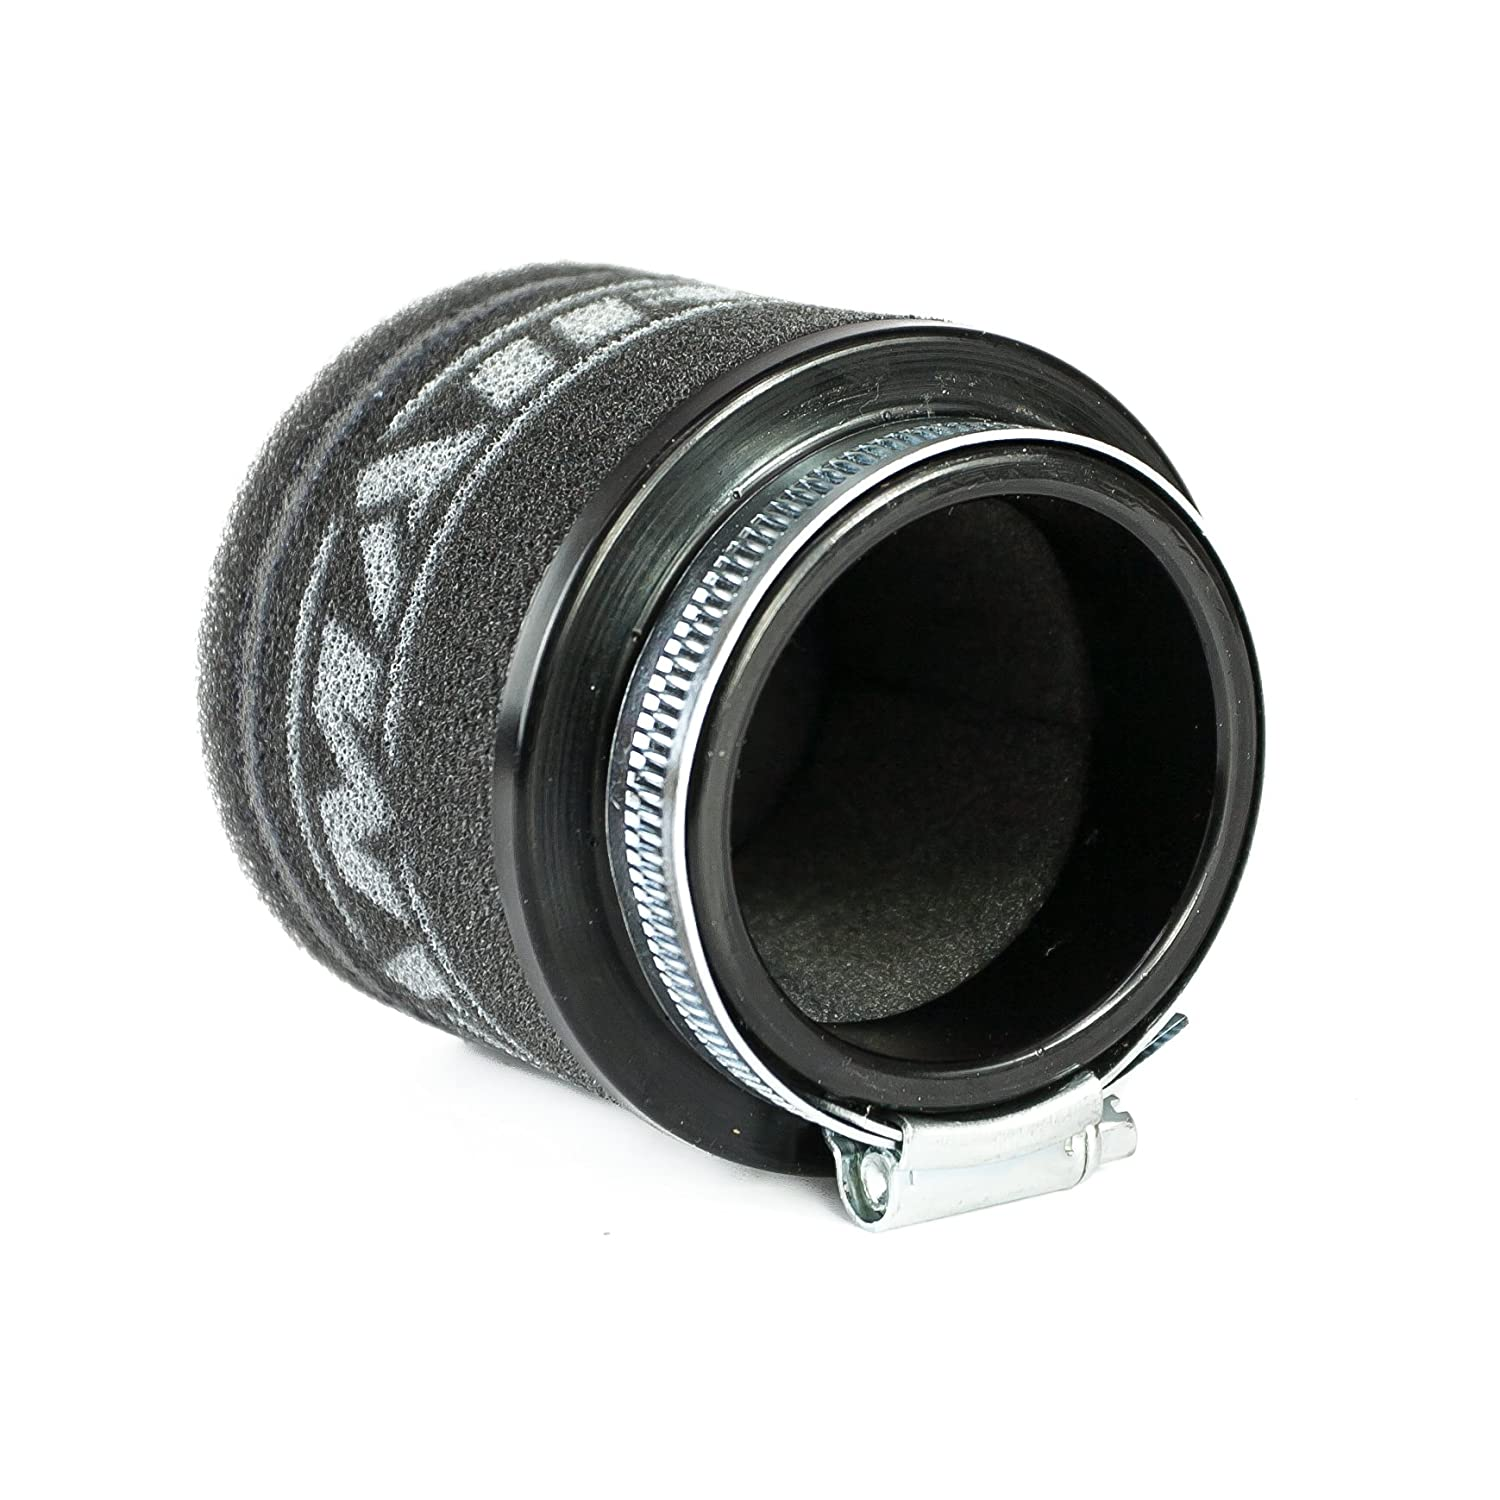 Ramair Filters MR-025 Motorcycle Pod Air Filter 58 mm Black